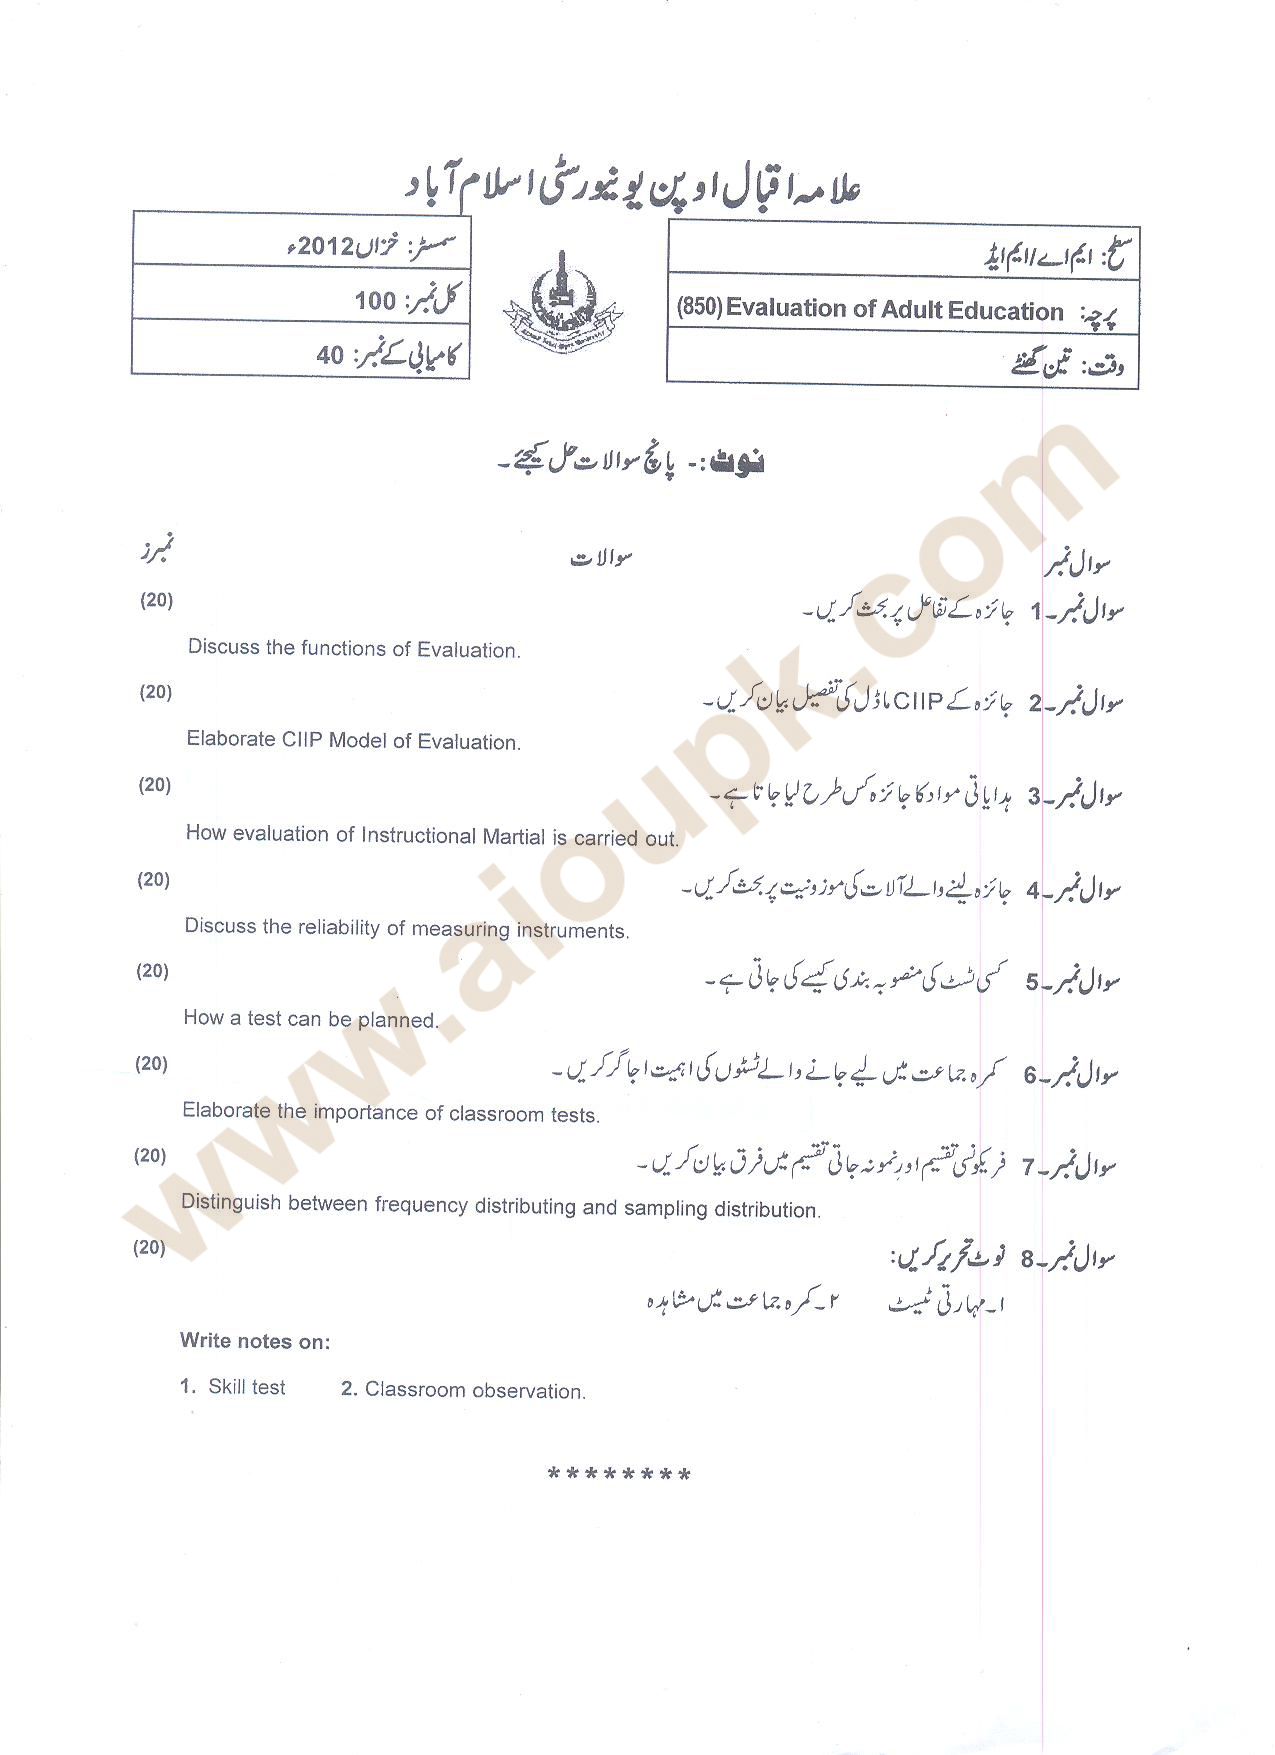 Evaluation Of Adult Education Code 850 M Ed Aiou Old Papers